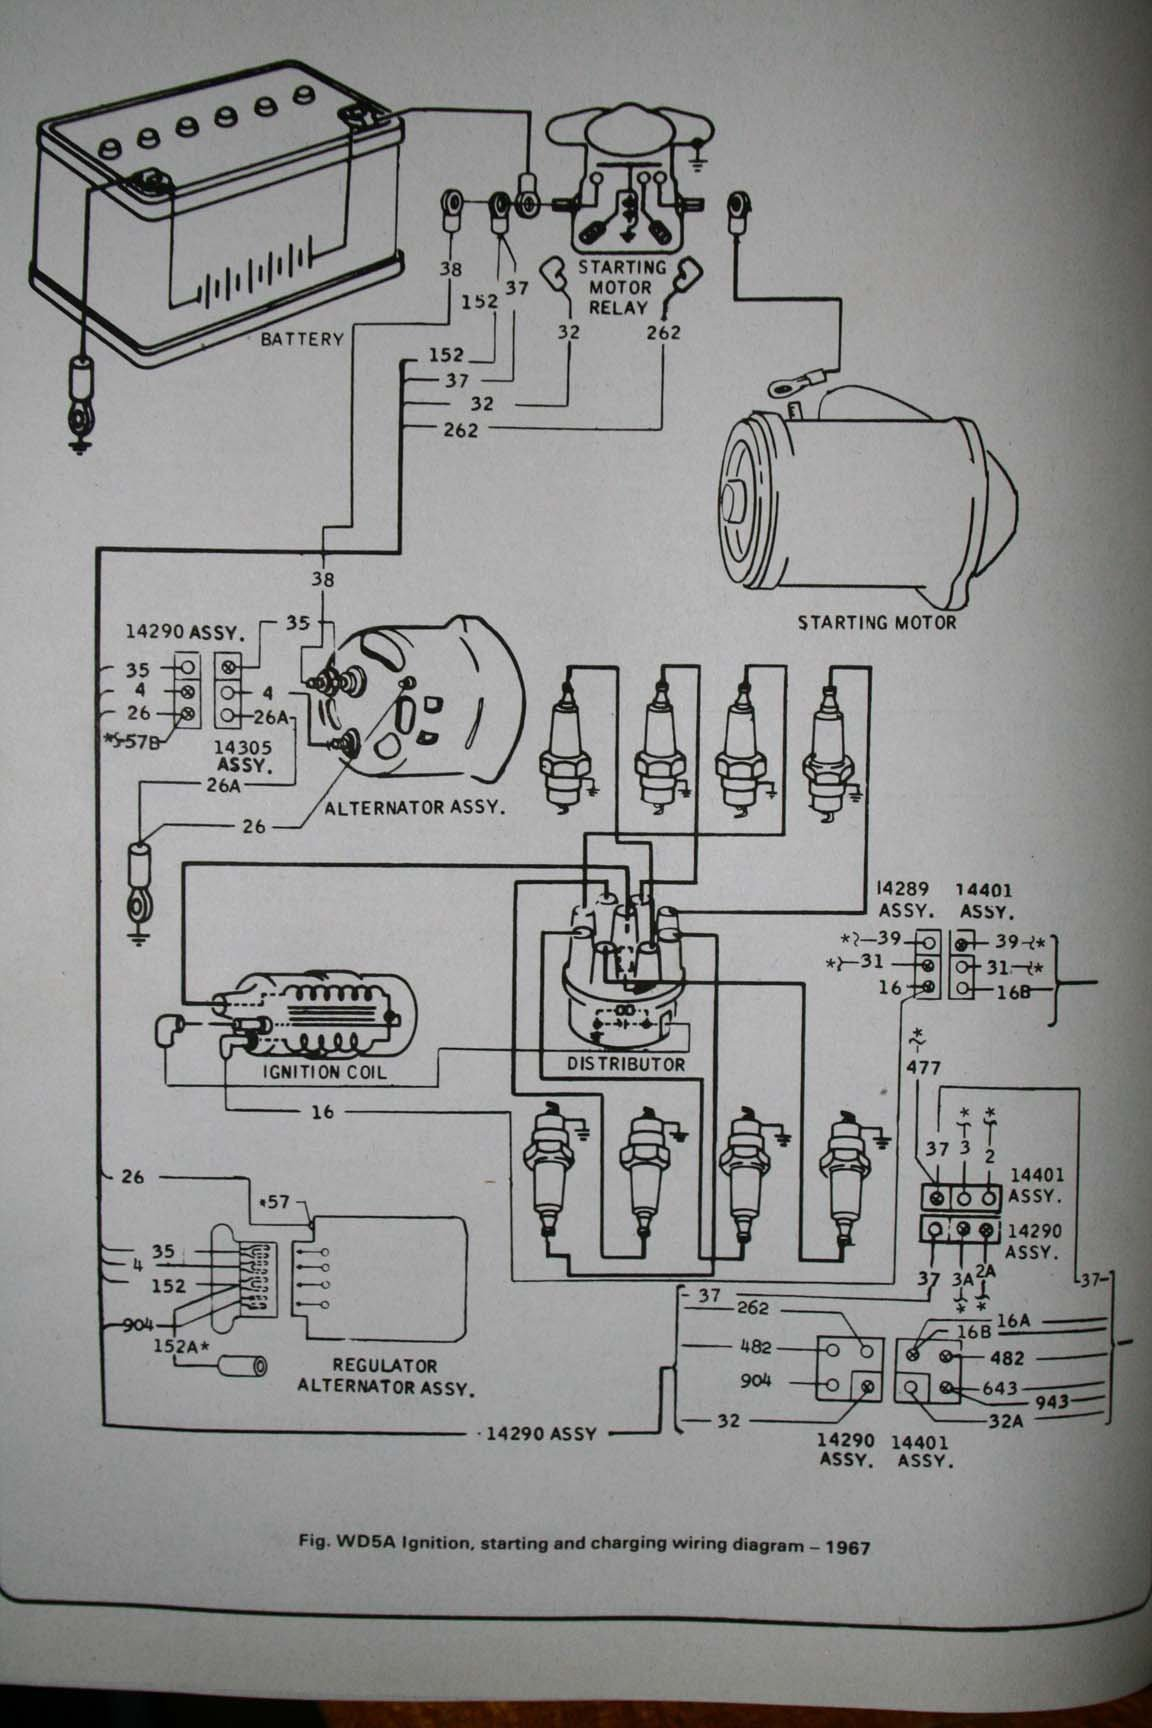 voltage regulator alt wiring on 67 coupe, have a wire i'm not sure 72 ford alternator wiring diagram click image for larger version name 1967 starting and charging diagram jpg views